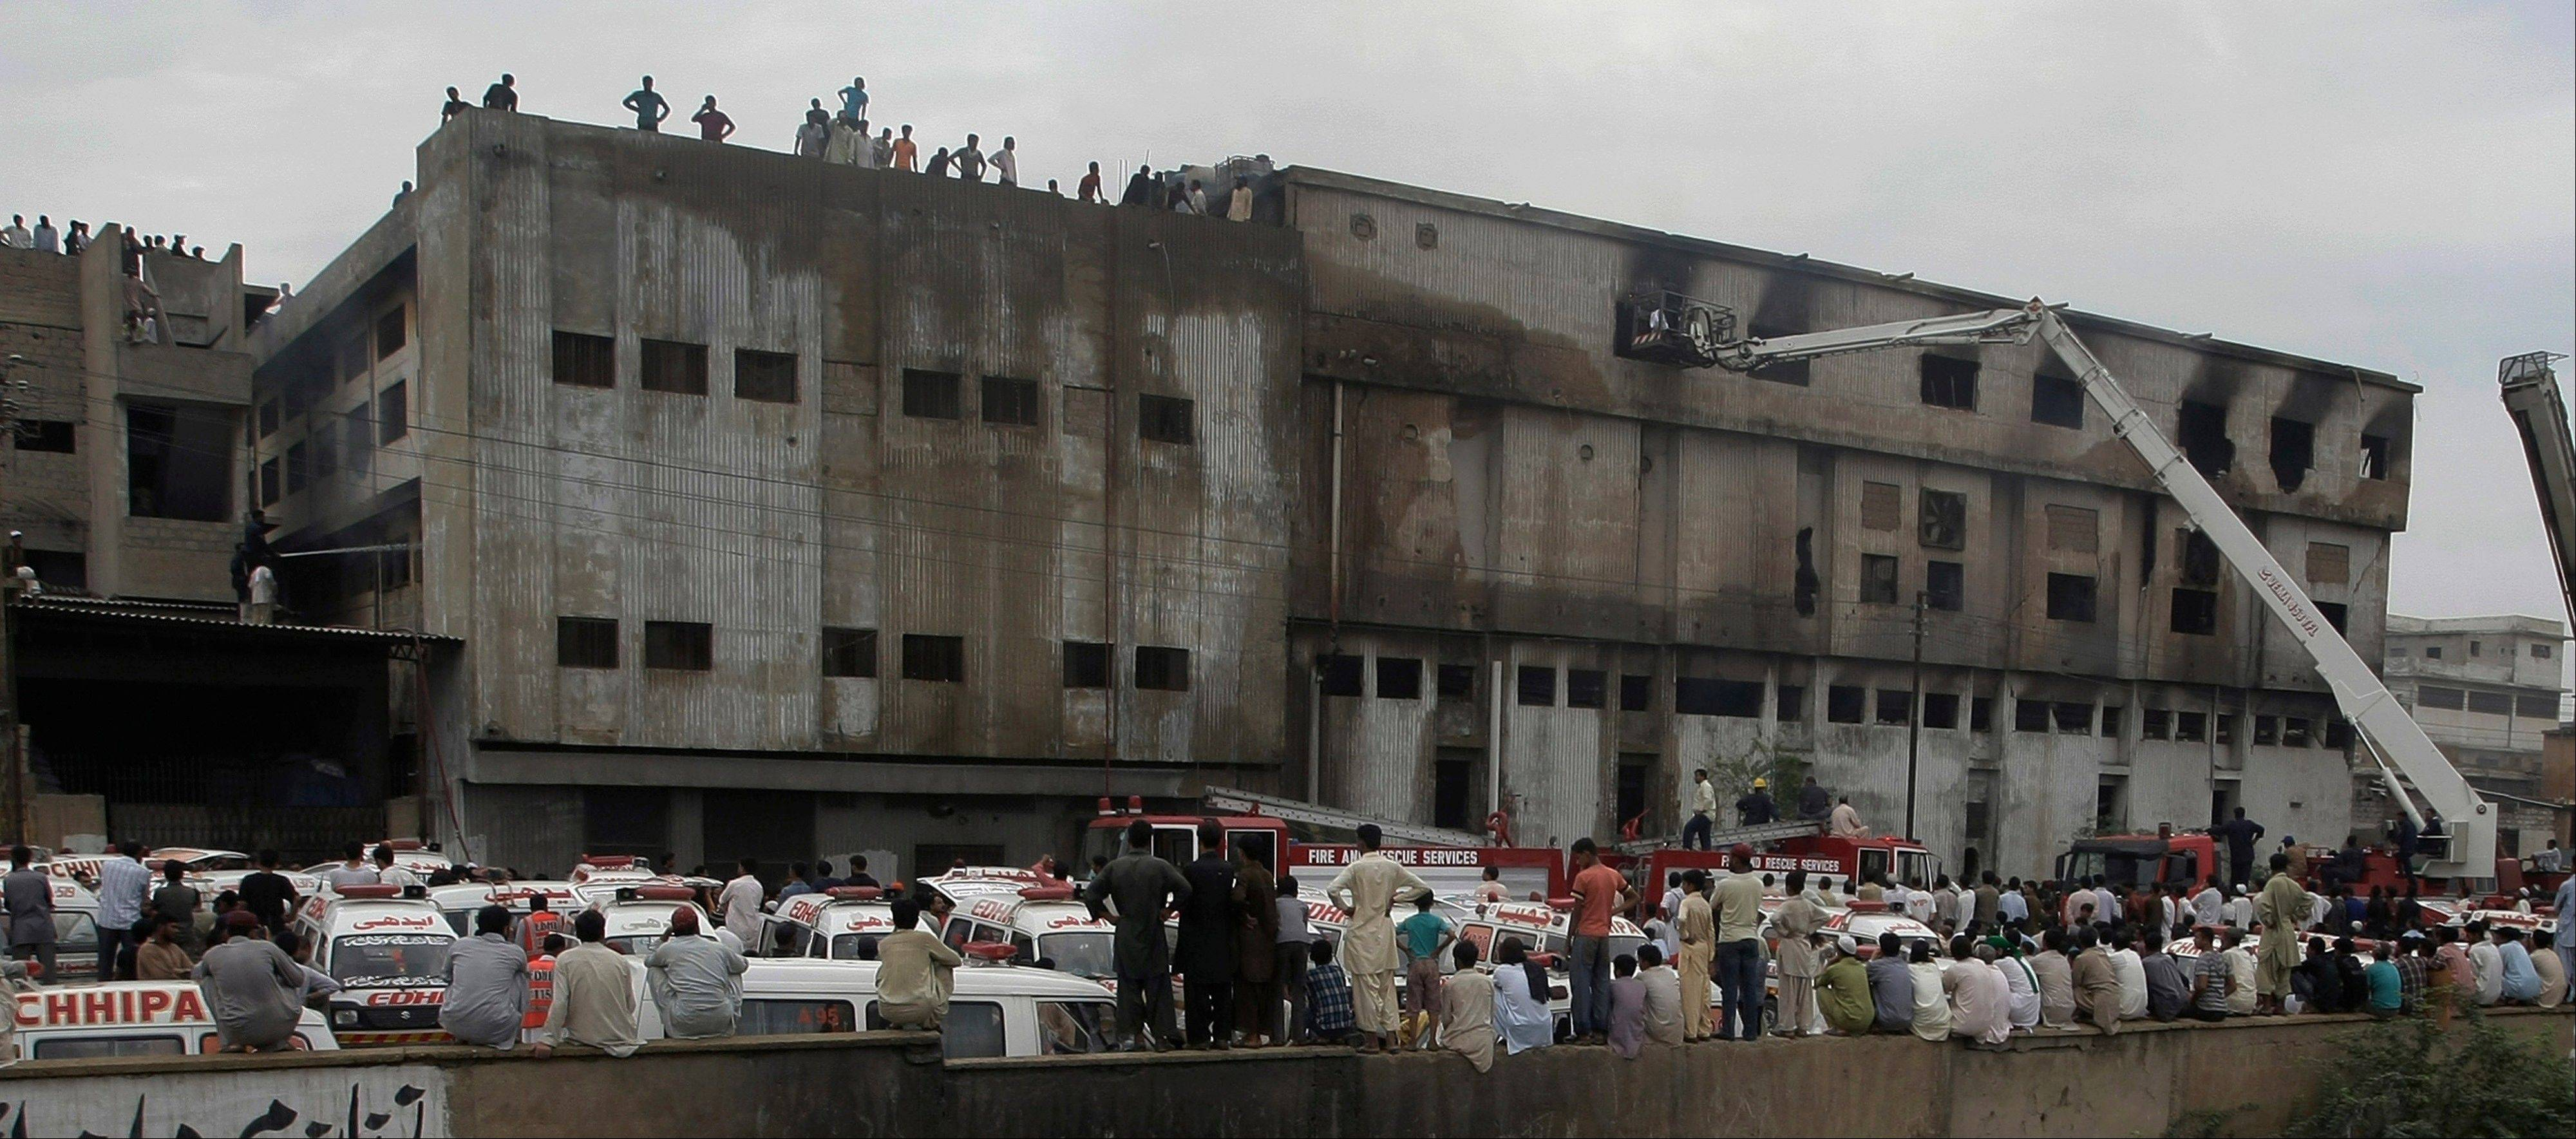 People gather as rescue work is in progress at a burned garment factory in Karachi, Pakistan on Wednesday, Sept. 12, 2012.